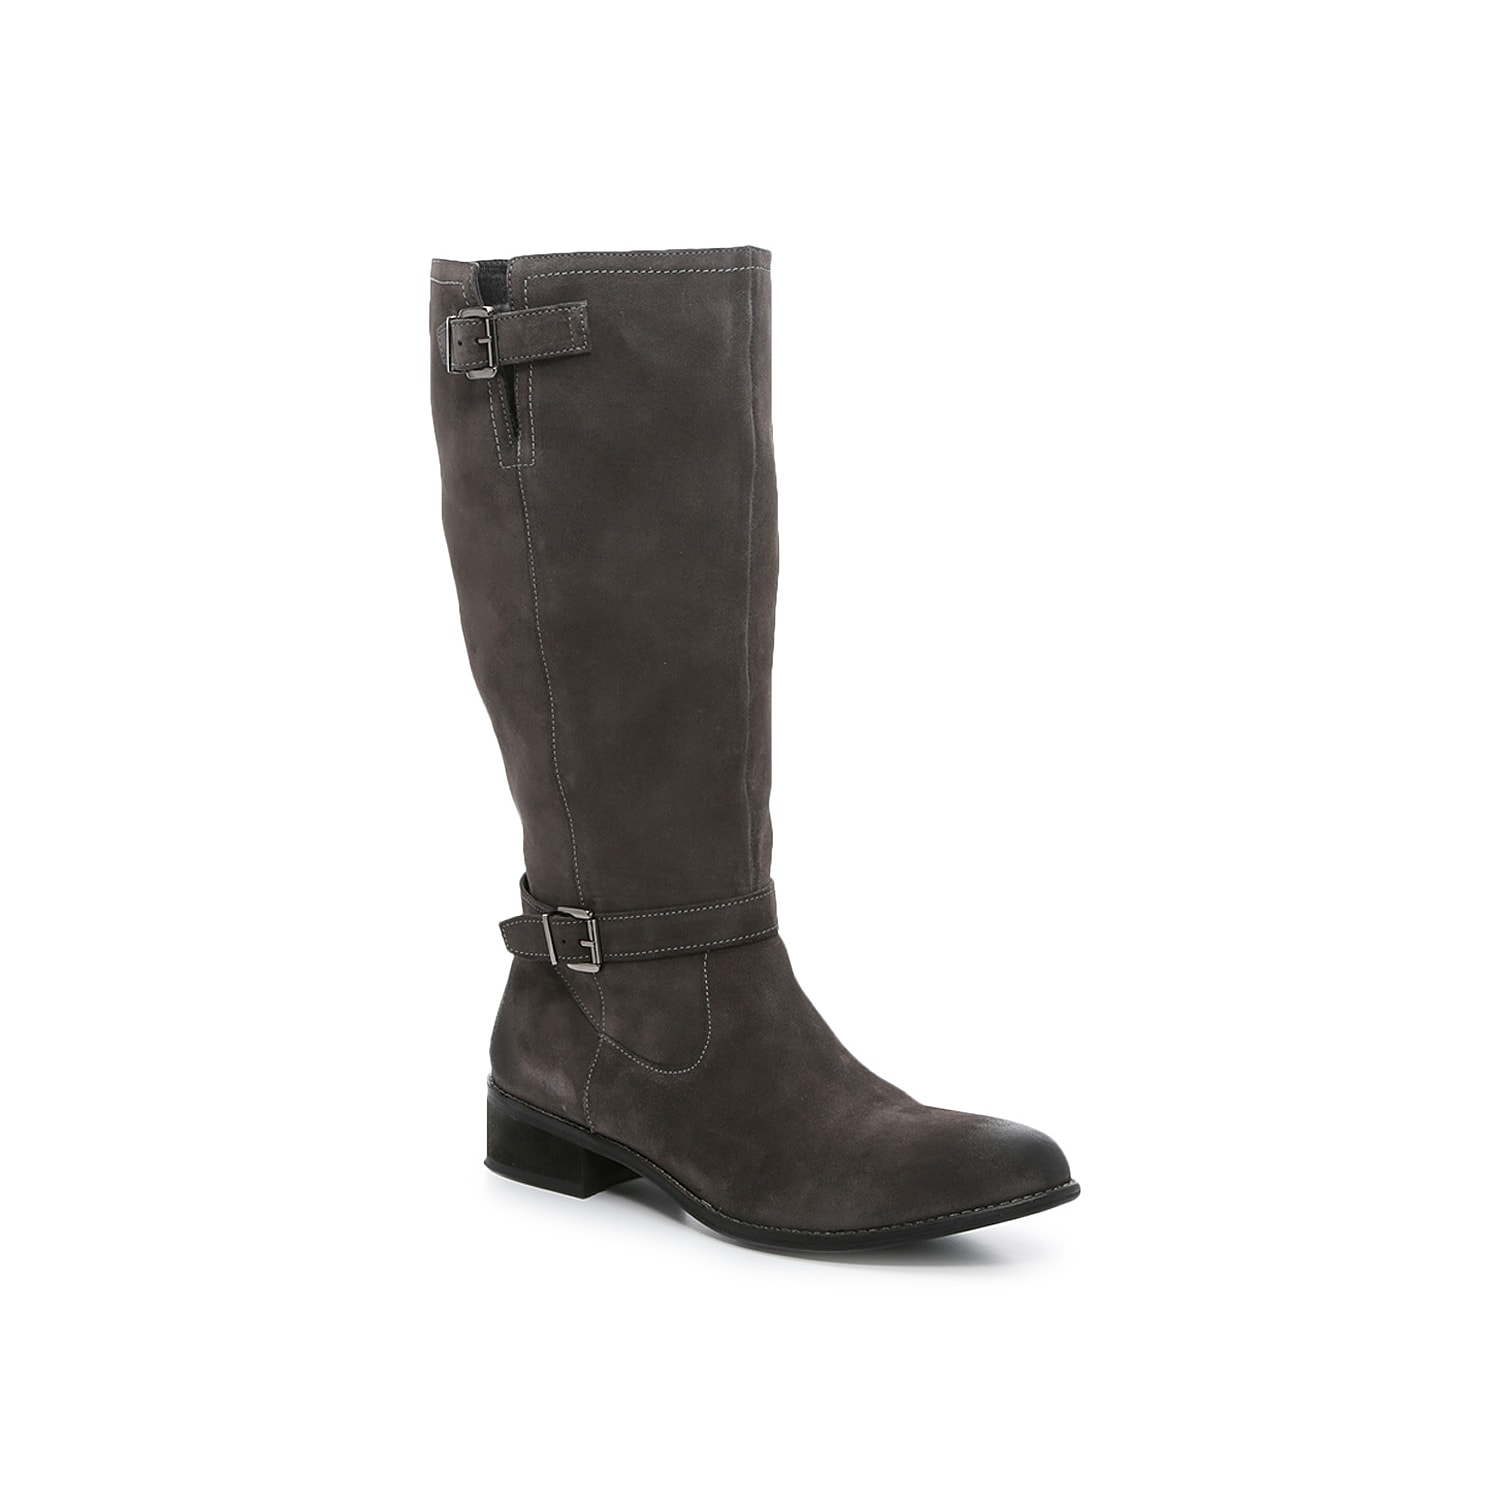 The Earth Hardwick boots are crafted from nubuck leather and a durable outsole for lasting wearability. A full-length zipper with a hidden elastic panel provide an easygoing fit and a built-in panel allows you to adjust the fit for top-notch comfort.Click here for Boot Measuring Guide.